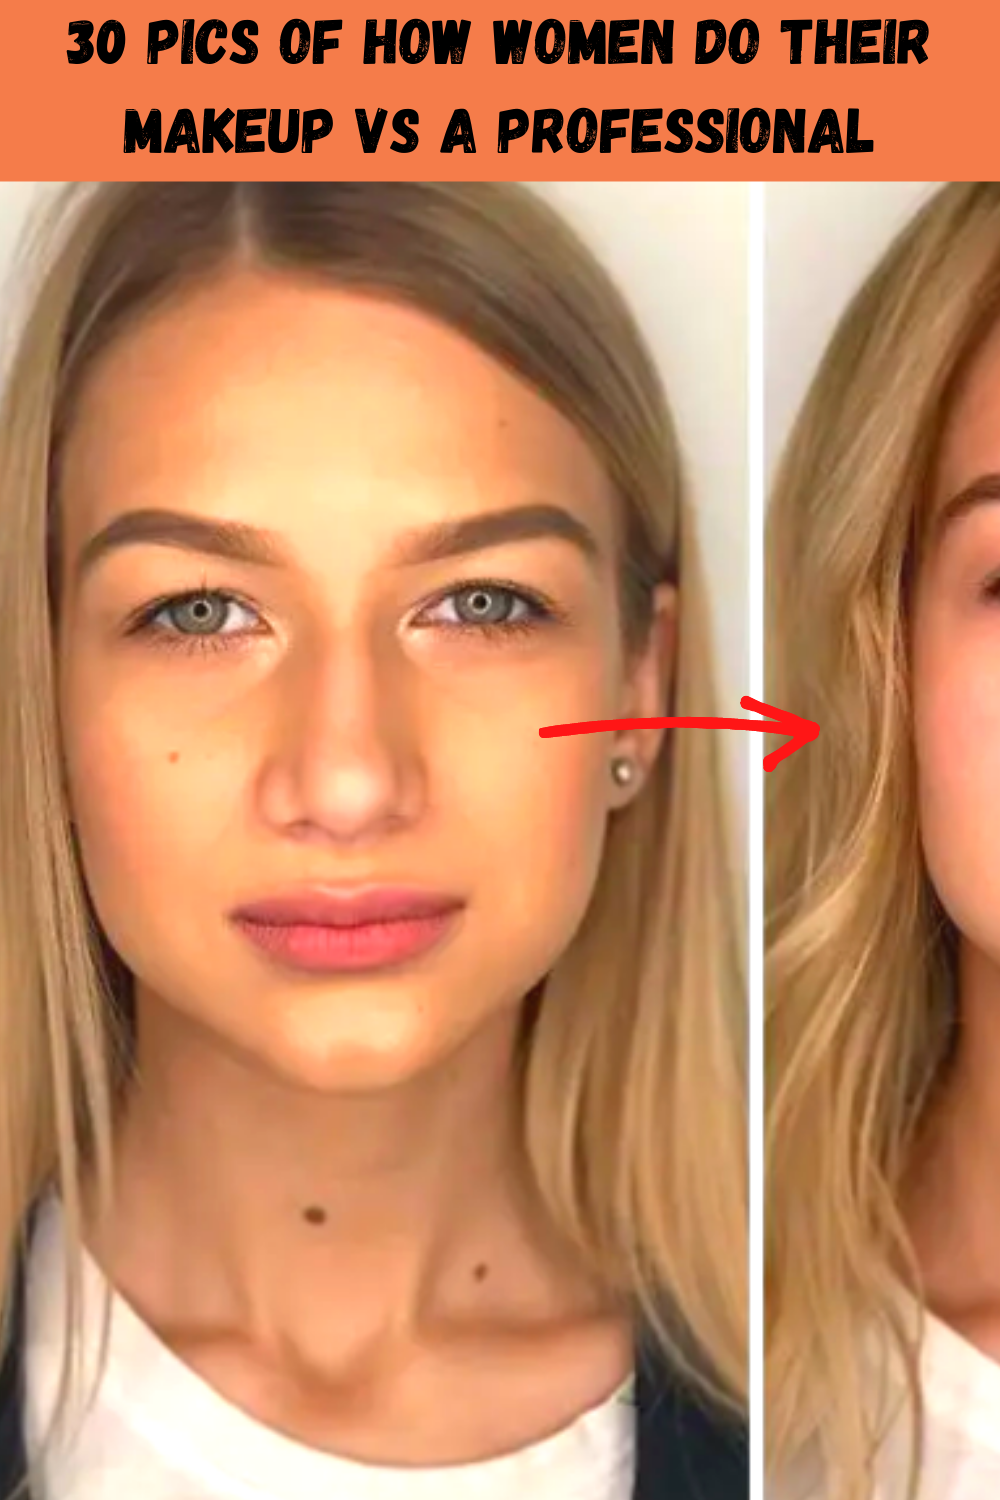 30 Pics Of How Women Do Their Makeup Vs A Professional In 2020 Putting On Makeup Makeup Wedding Hairstyles For Long Hair